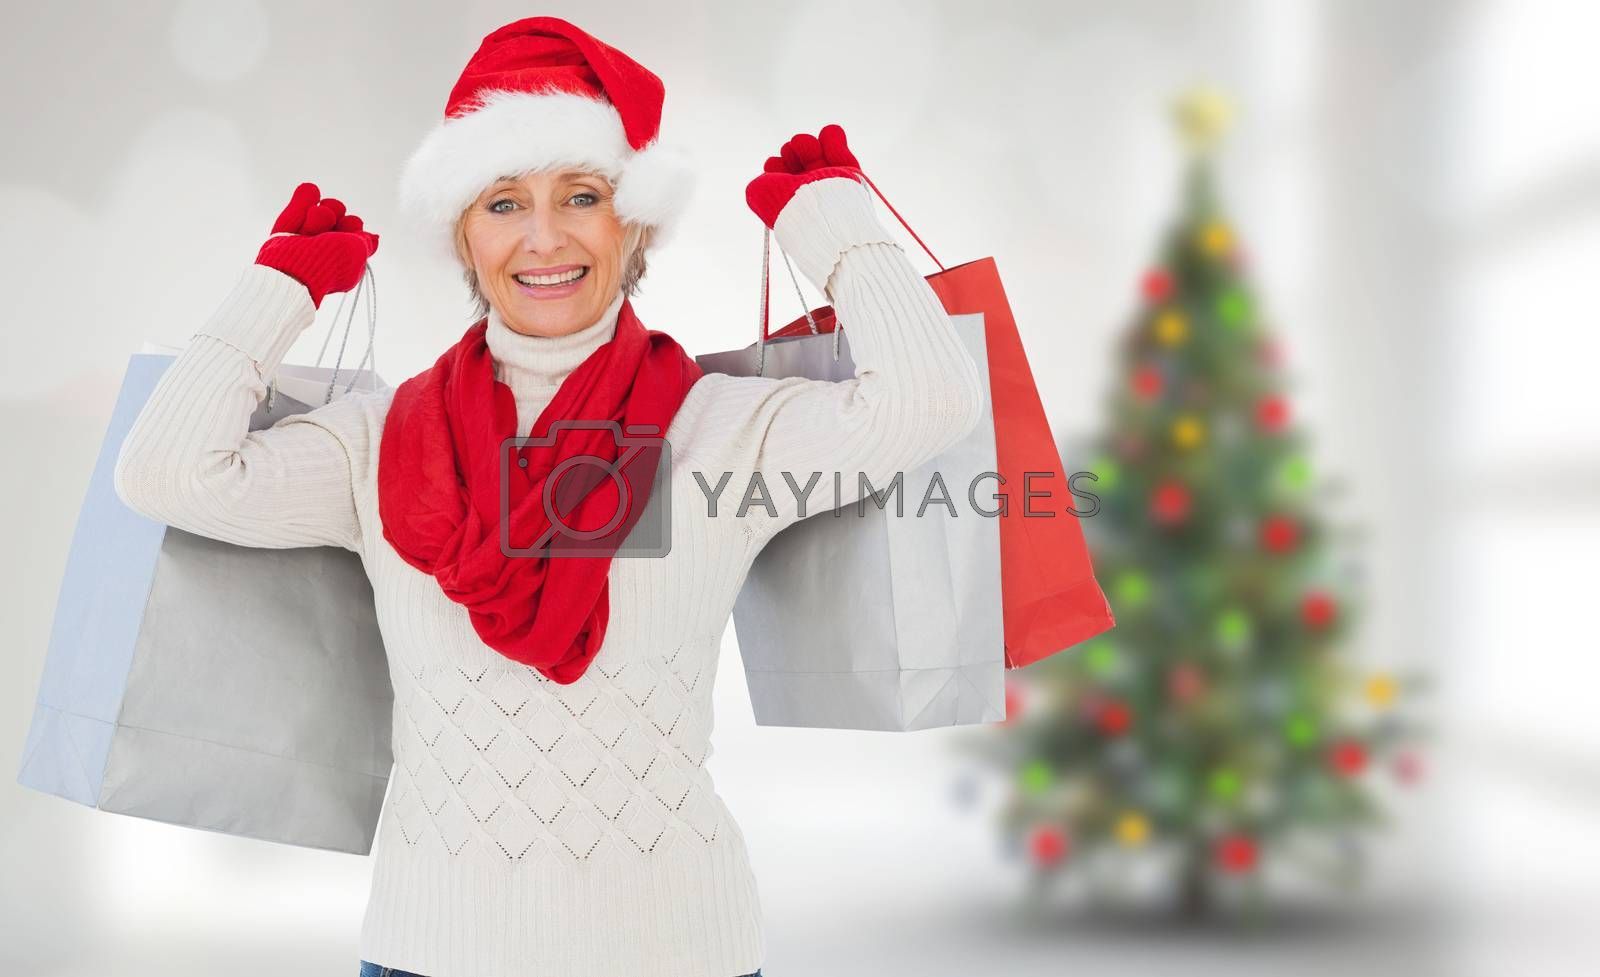 Composite image of festive woman holding shopping bags by Wavebreakmedia